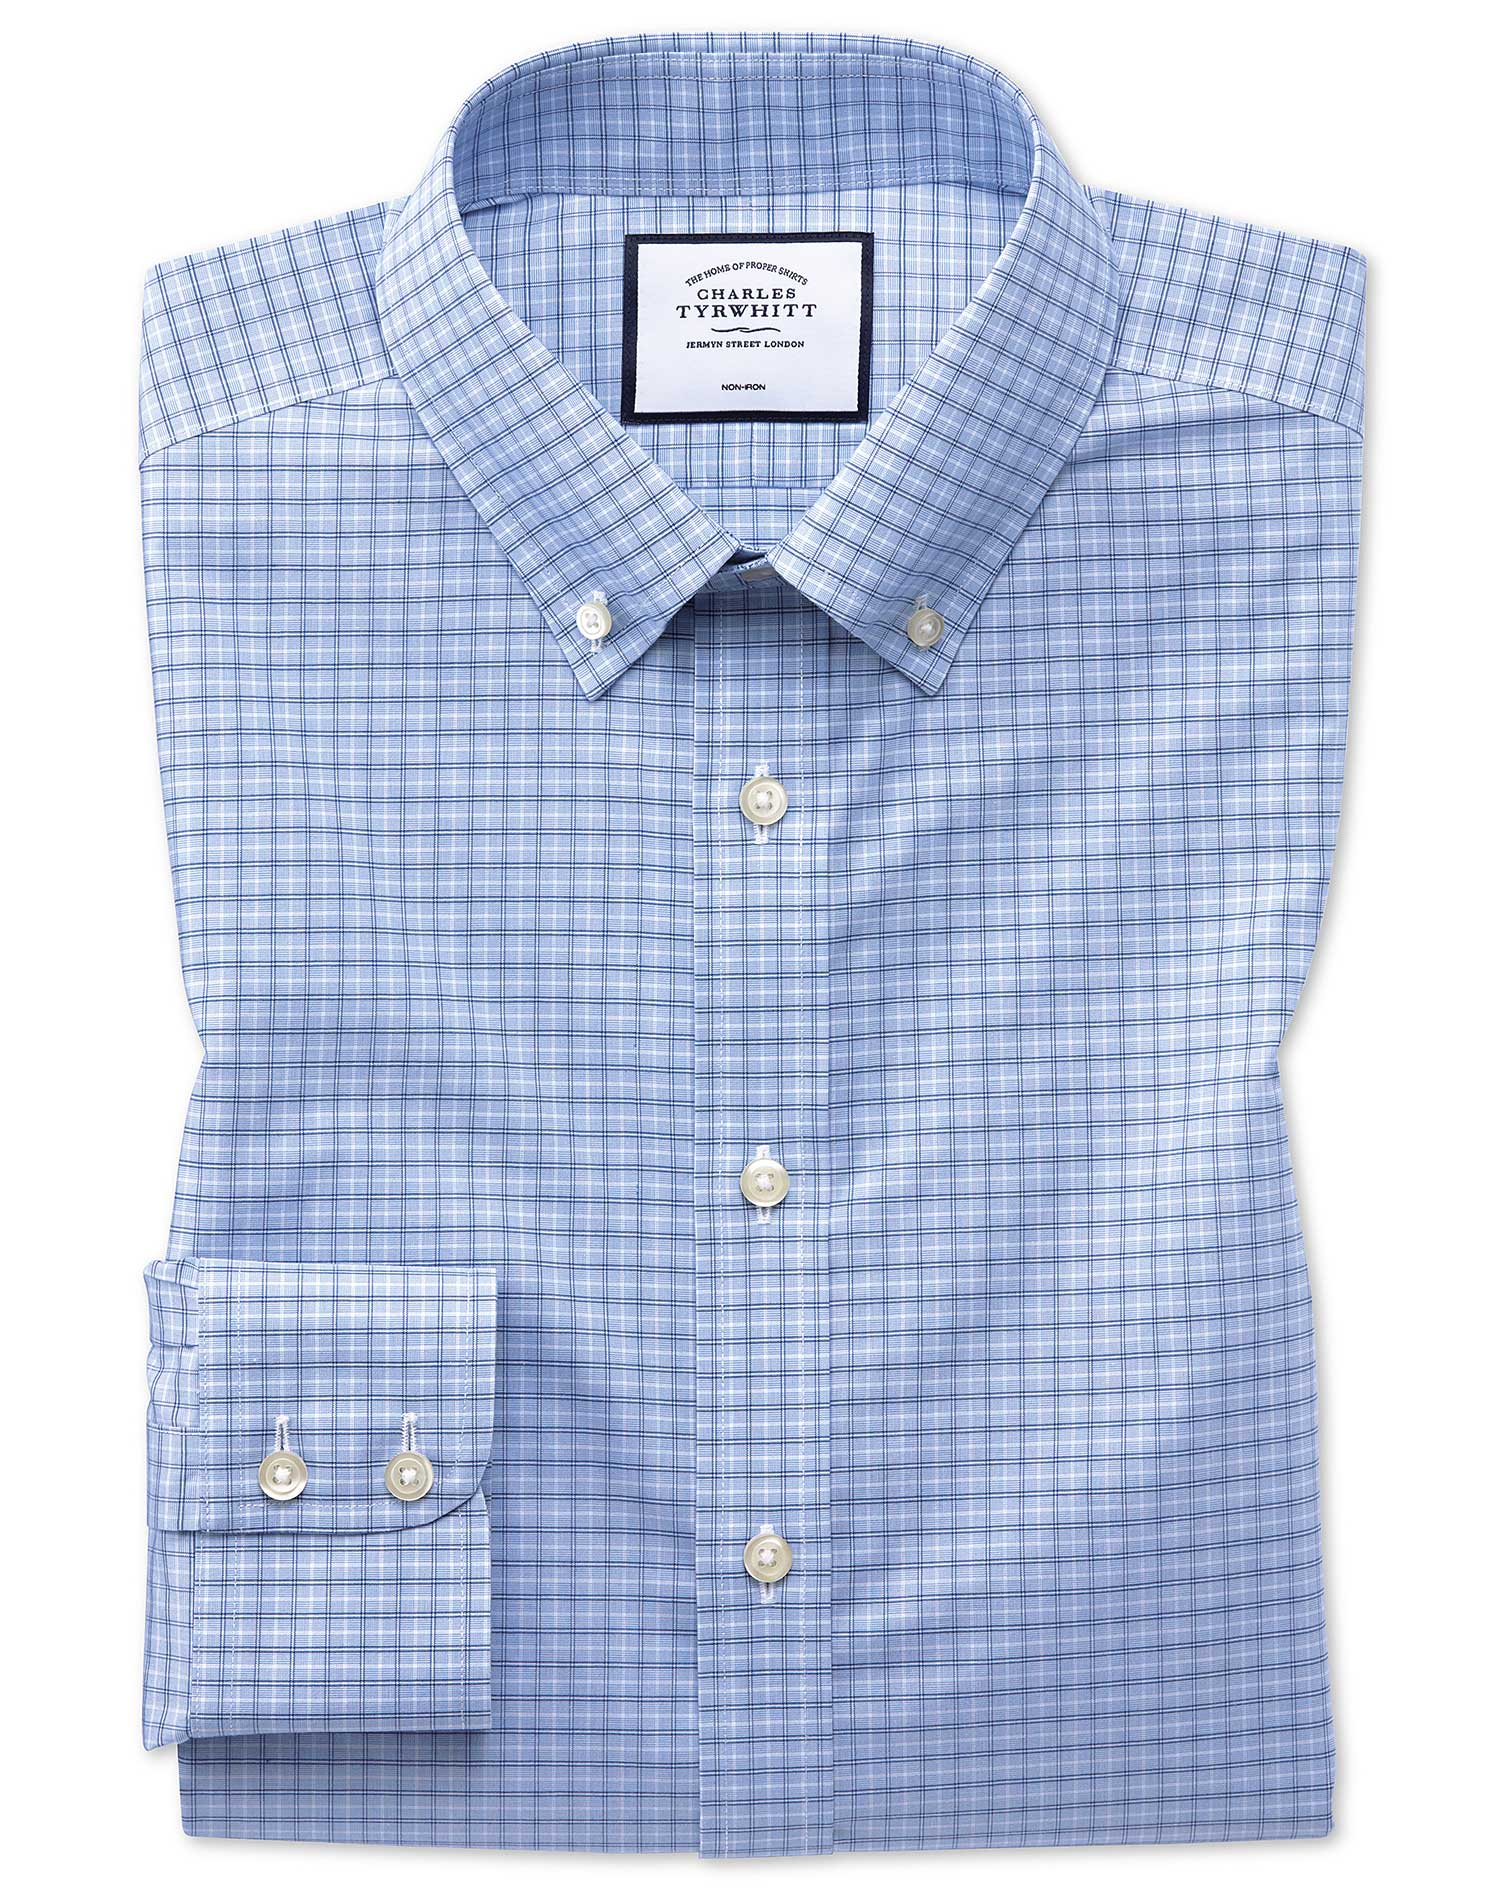 Slim Fit Non-Iron Button-Down Sky Blue Check Cotton Formal Shirt Single Cuff Size 17/34 by Charles T